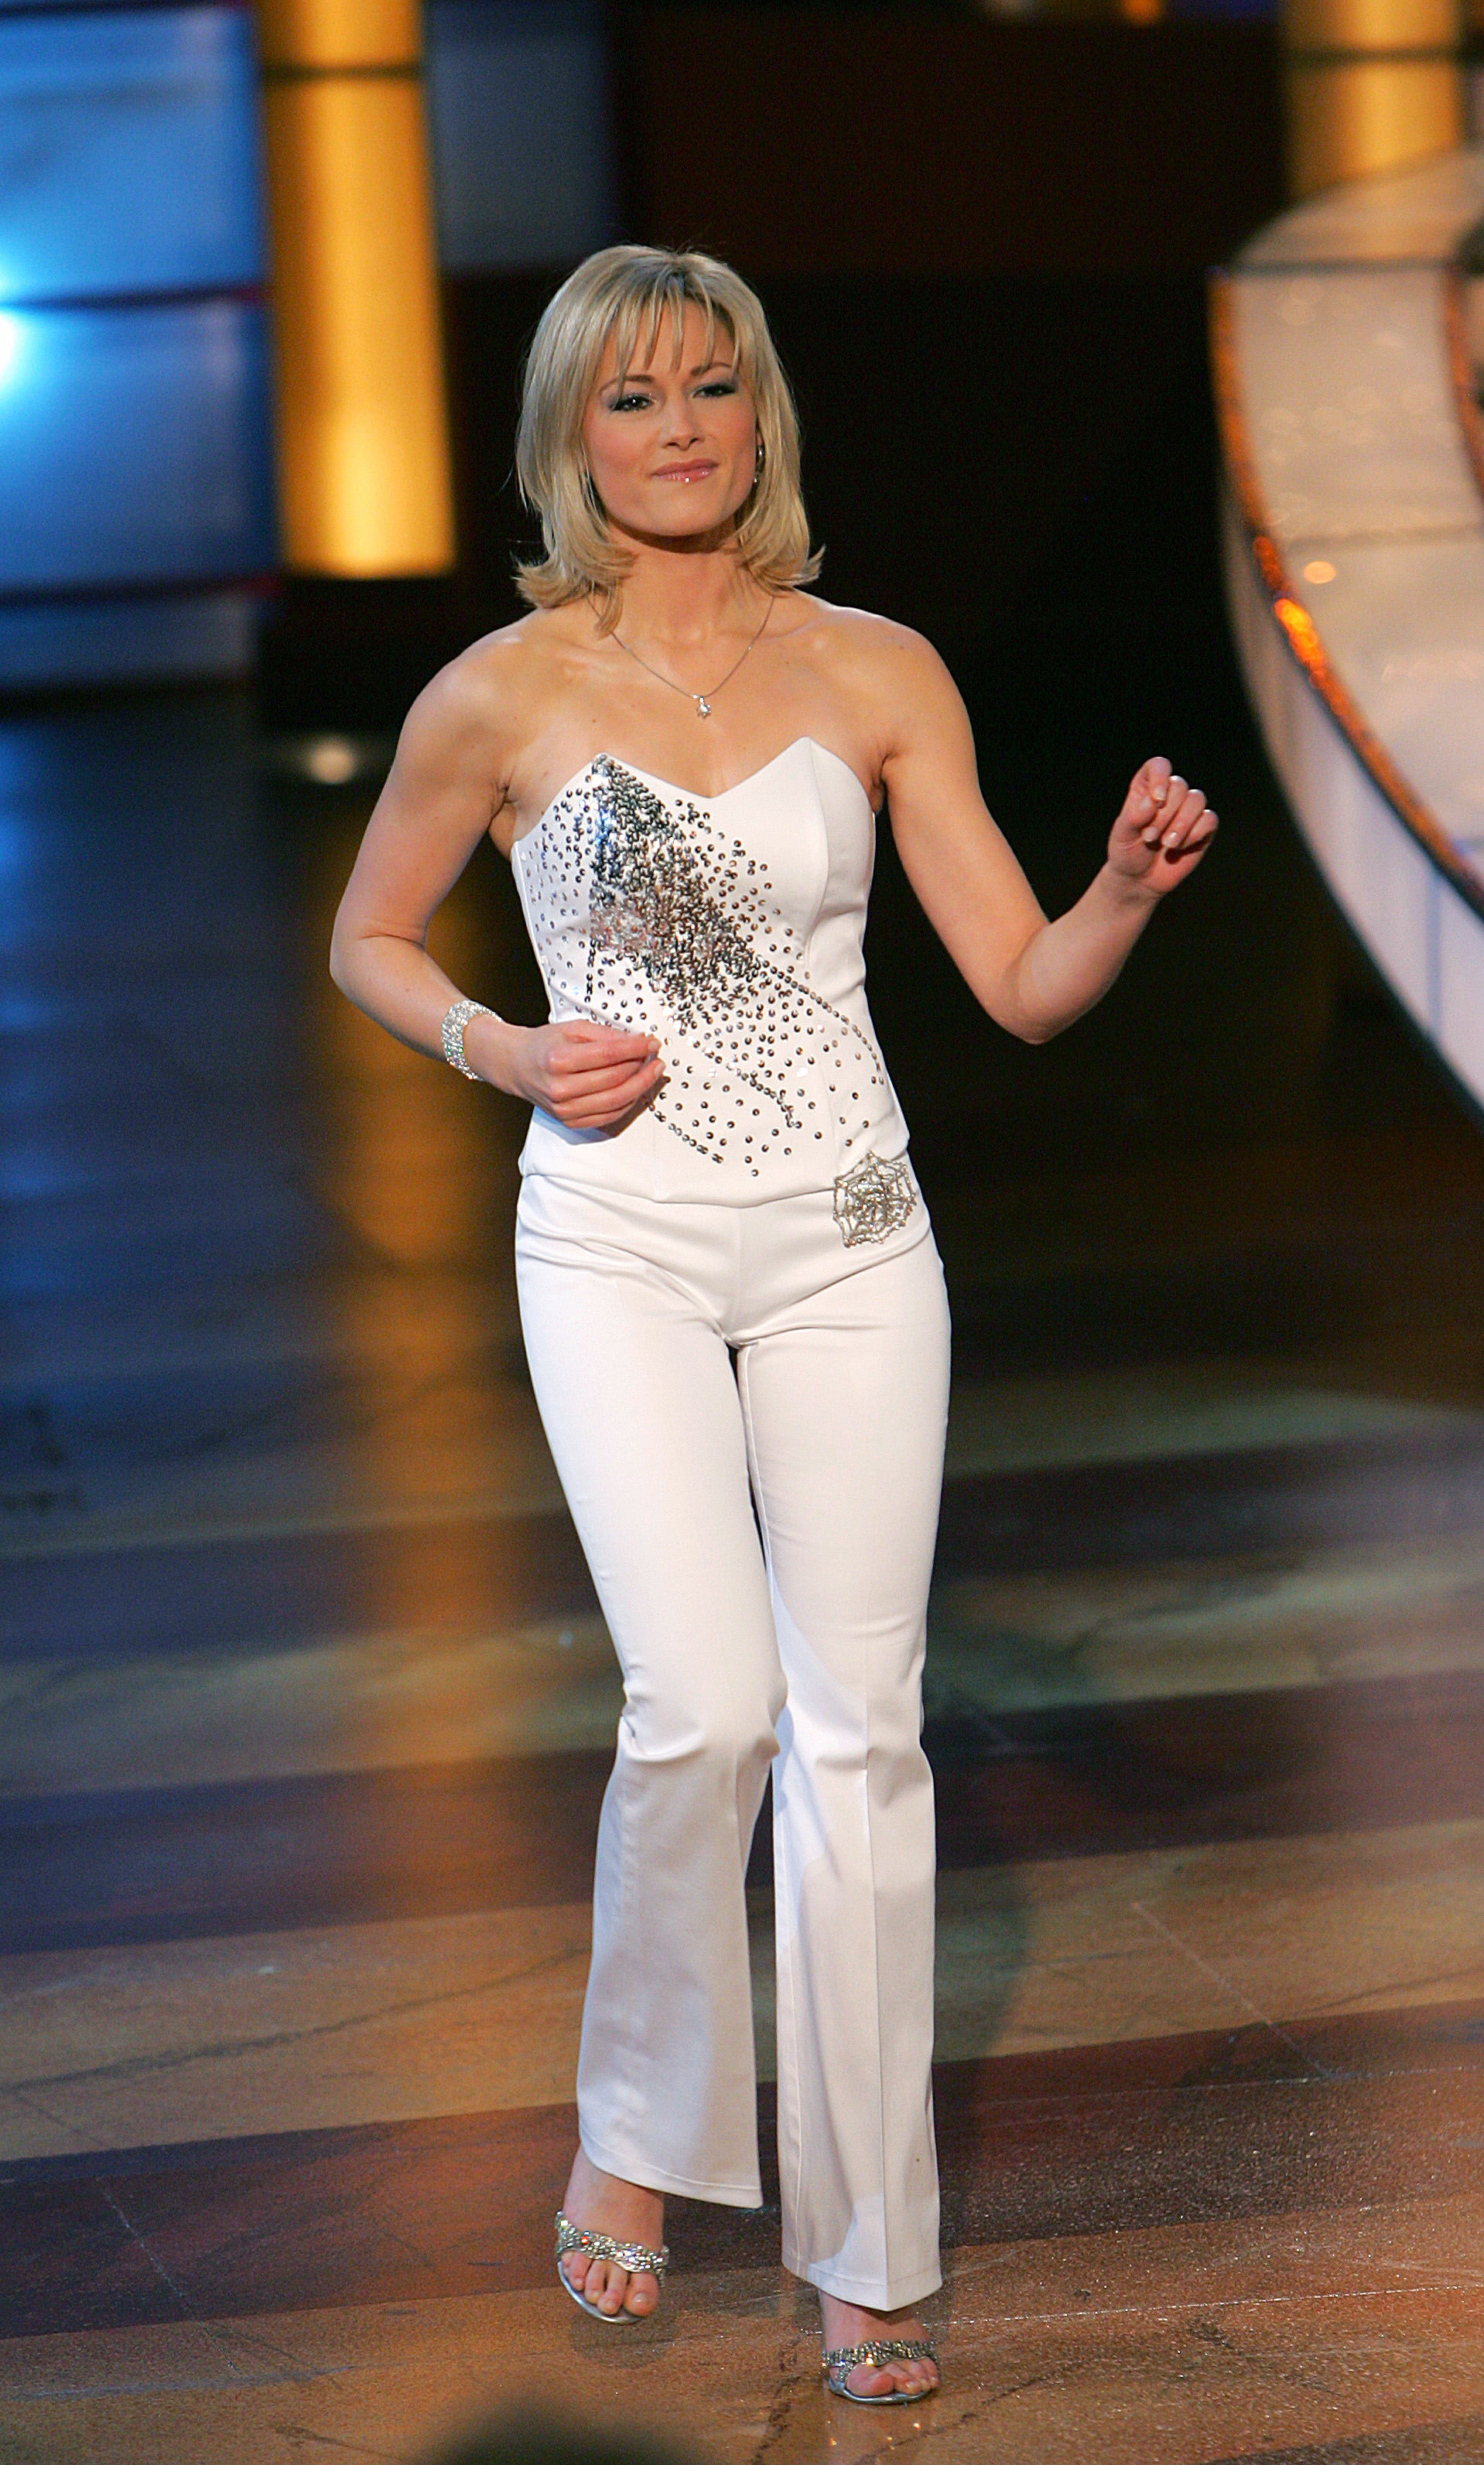 Helene Fischer Picture Gallery Nude Pictures - Office ...